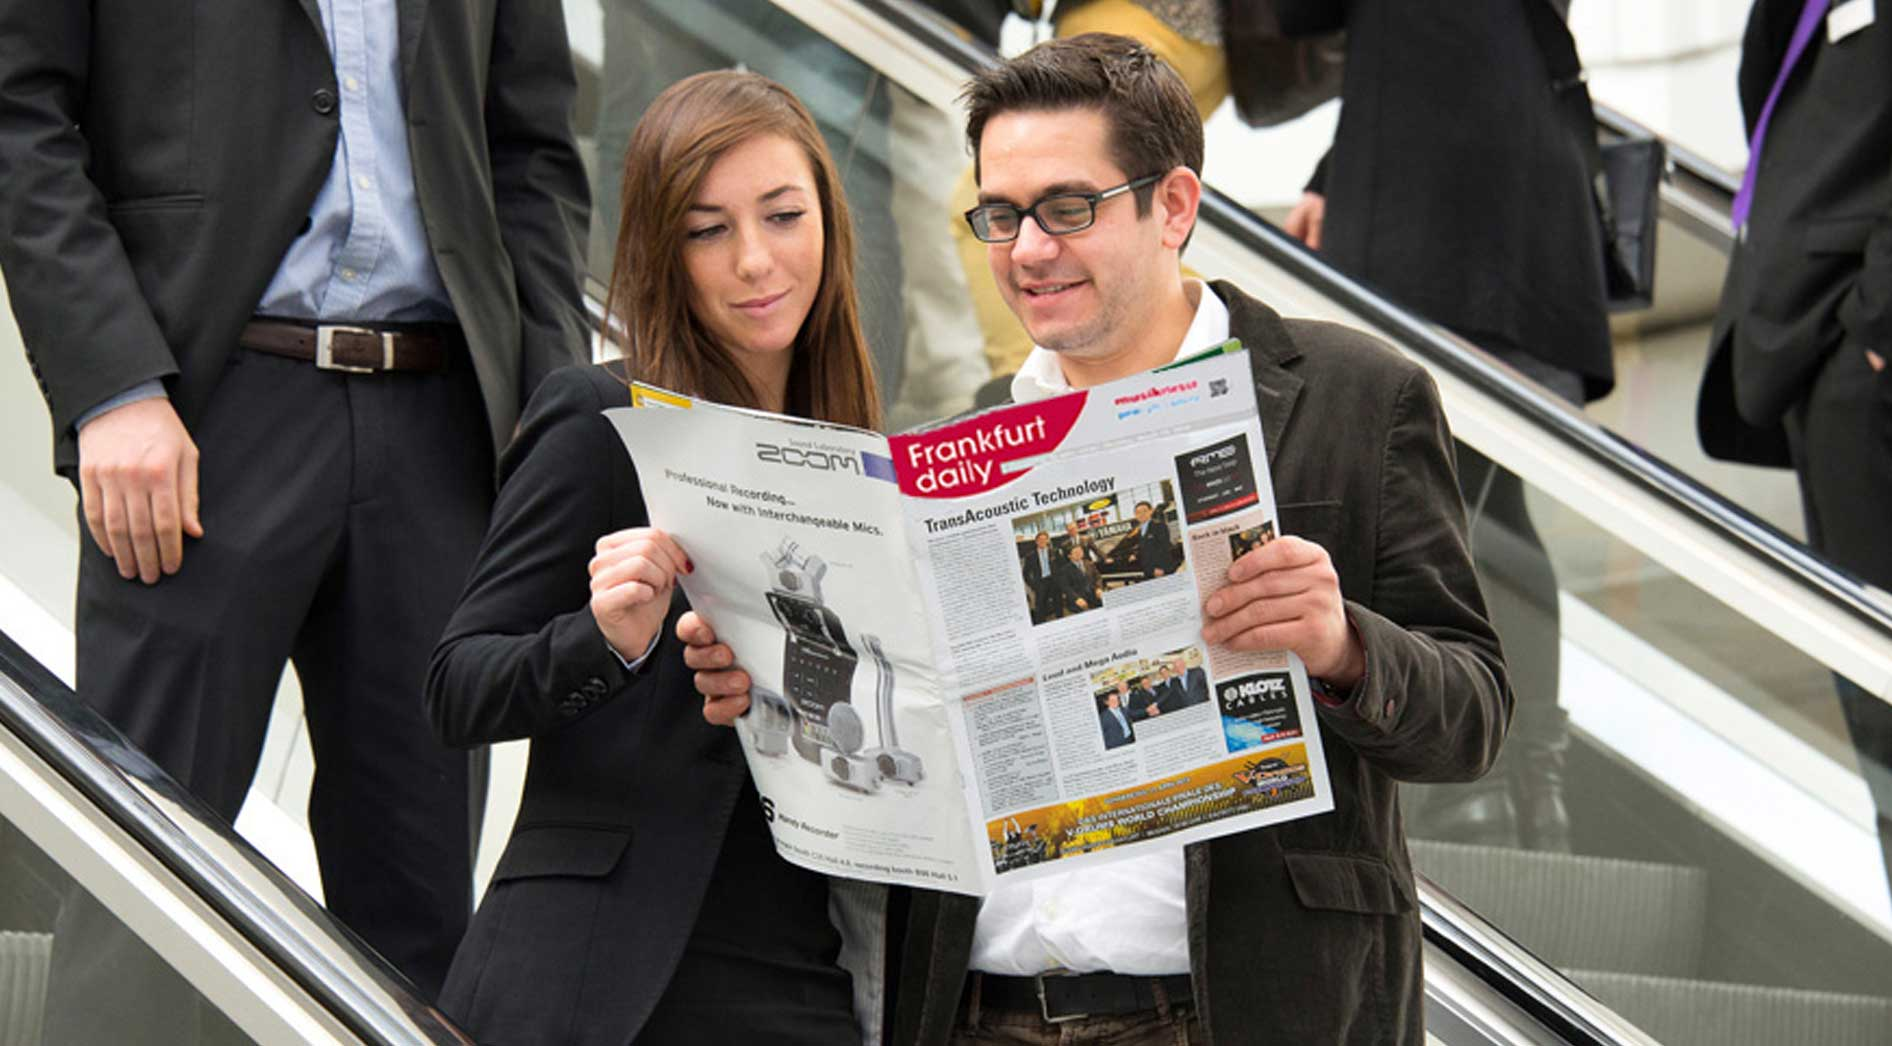 Visitors read the Frankfurt daily